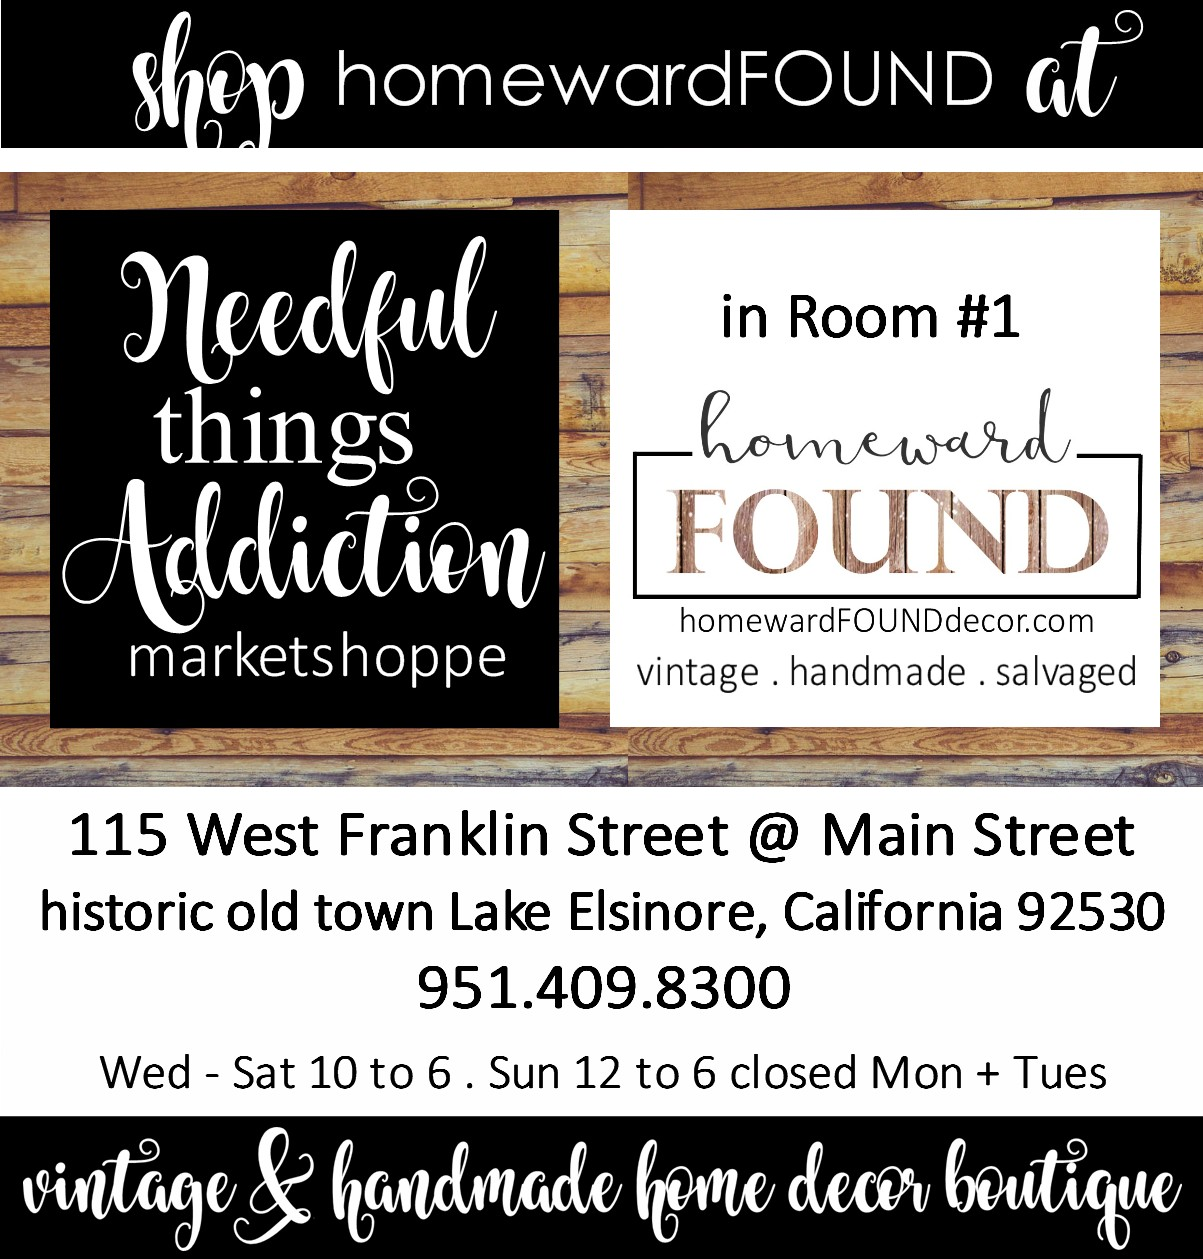 visit my homewardFOUND shop!